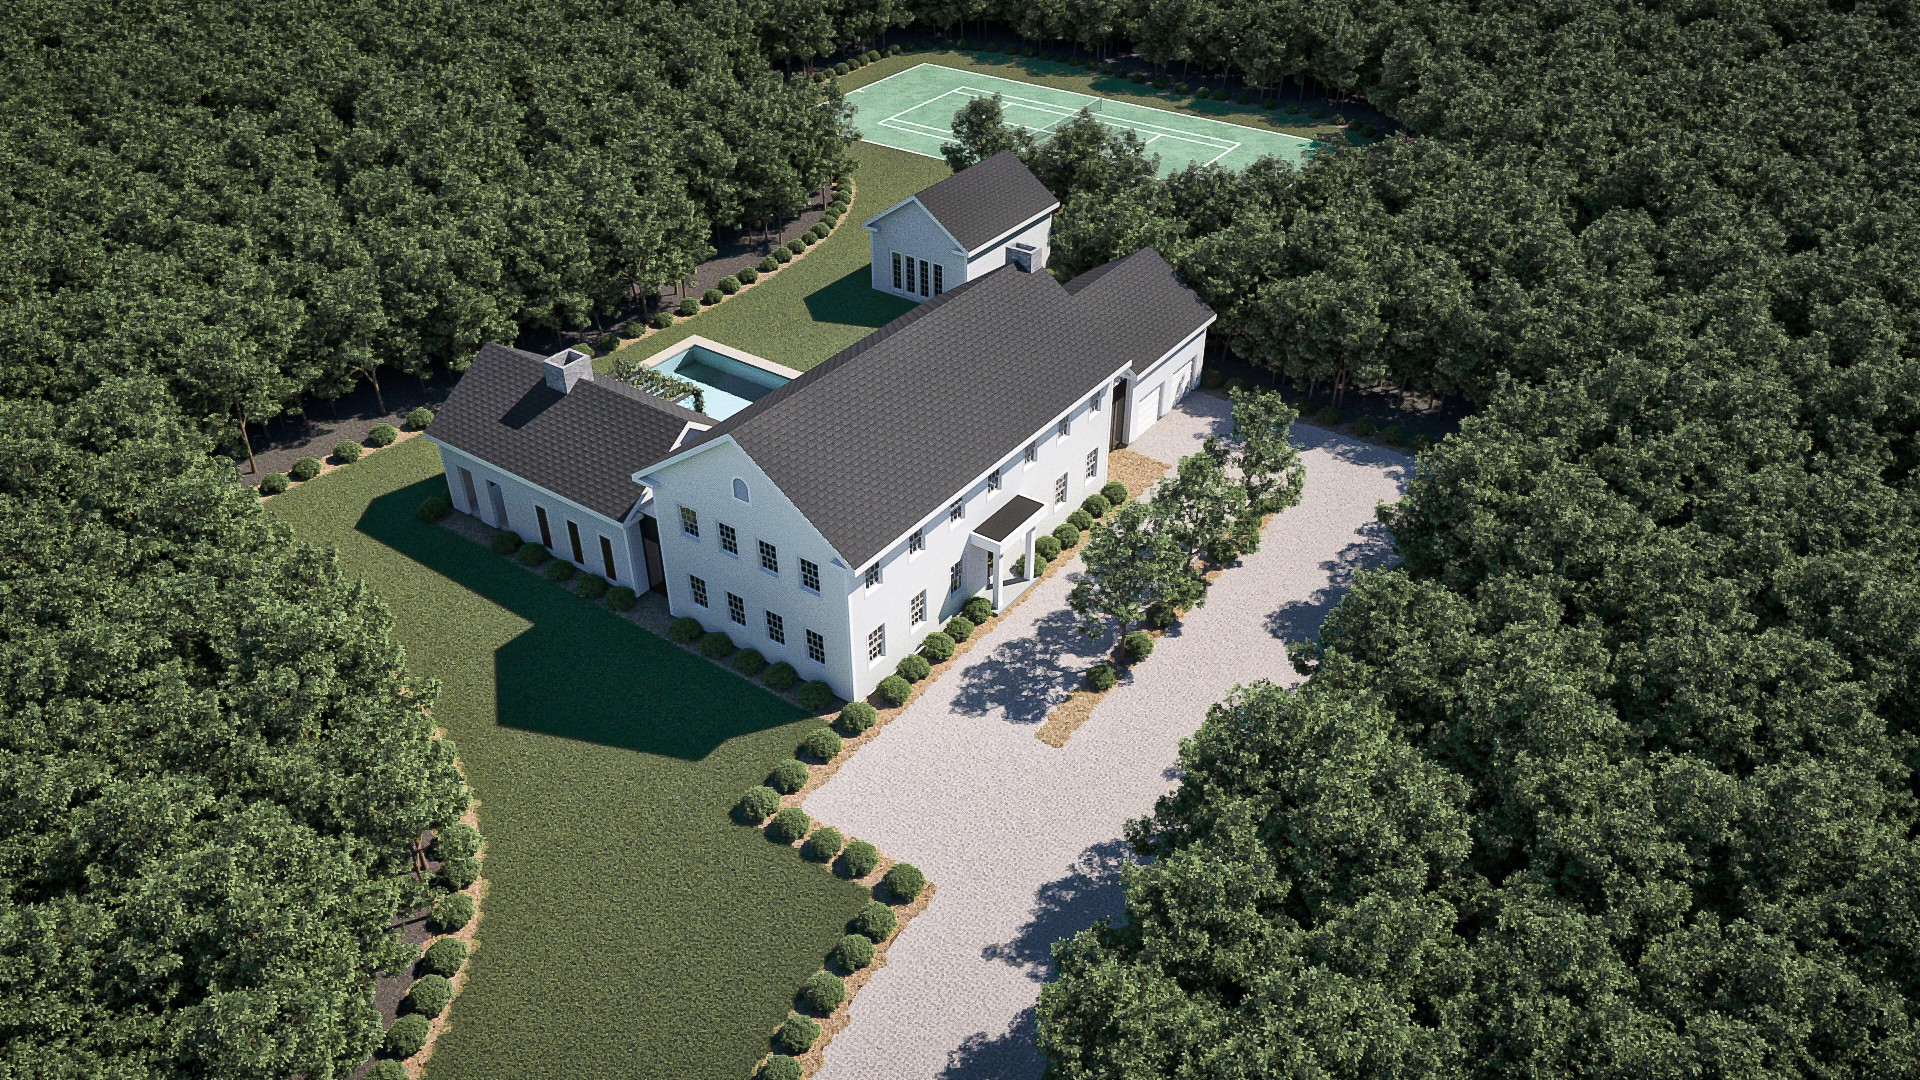 6 Ways 3D Rendering Can Help Pre-Sell Your New Property